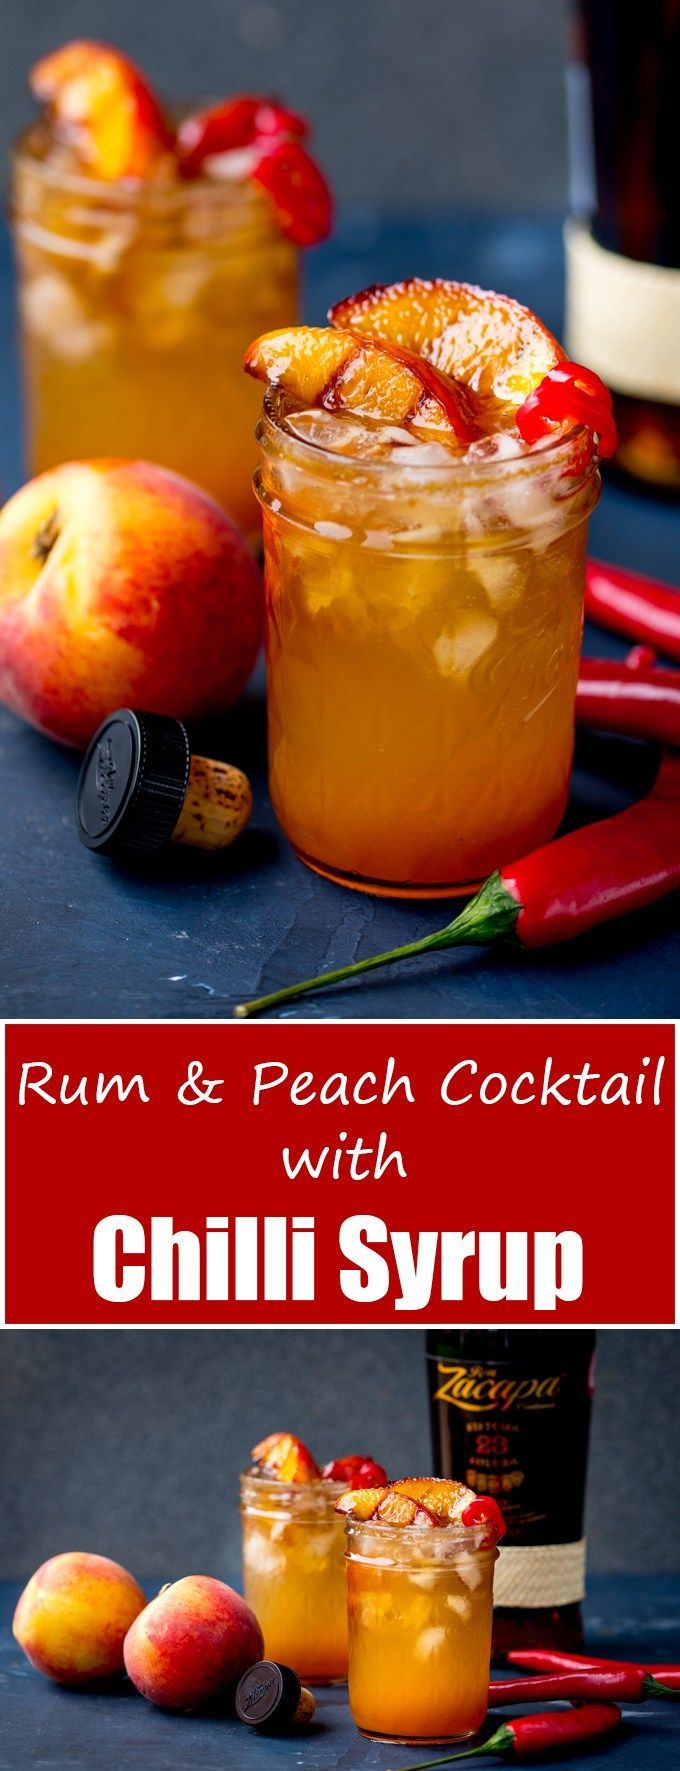 Rum and Peach Cocktail with Chilli Syrup - a spicy, refreshing drink for a warm Summer's evening!